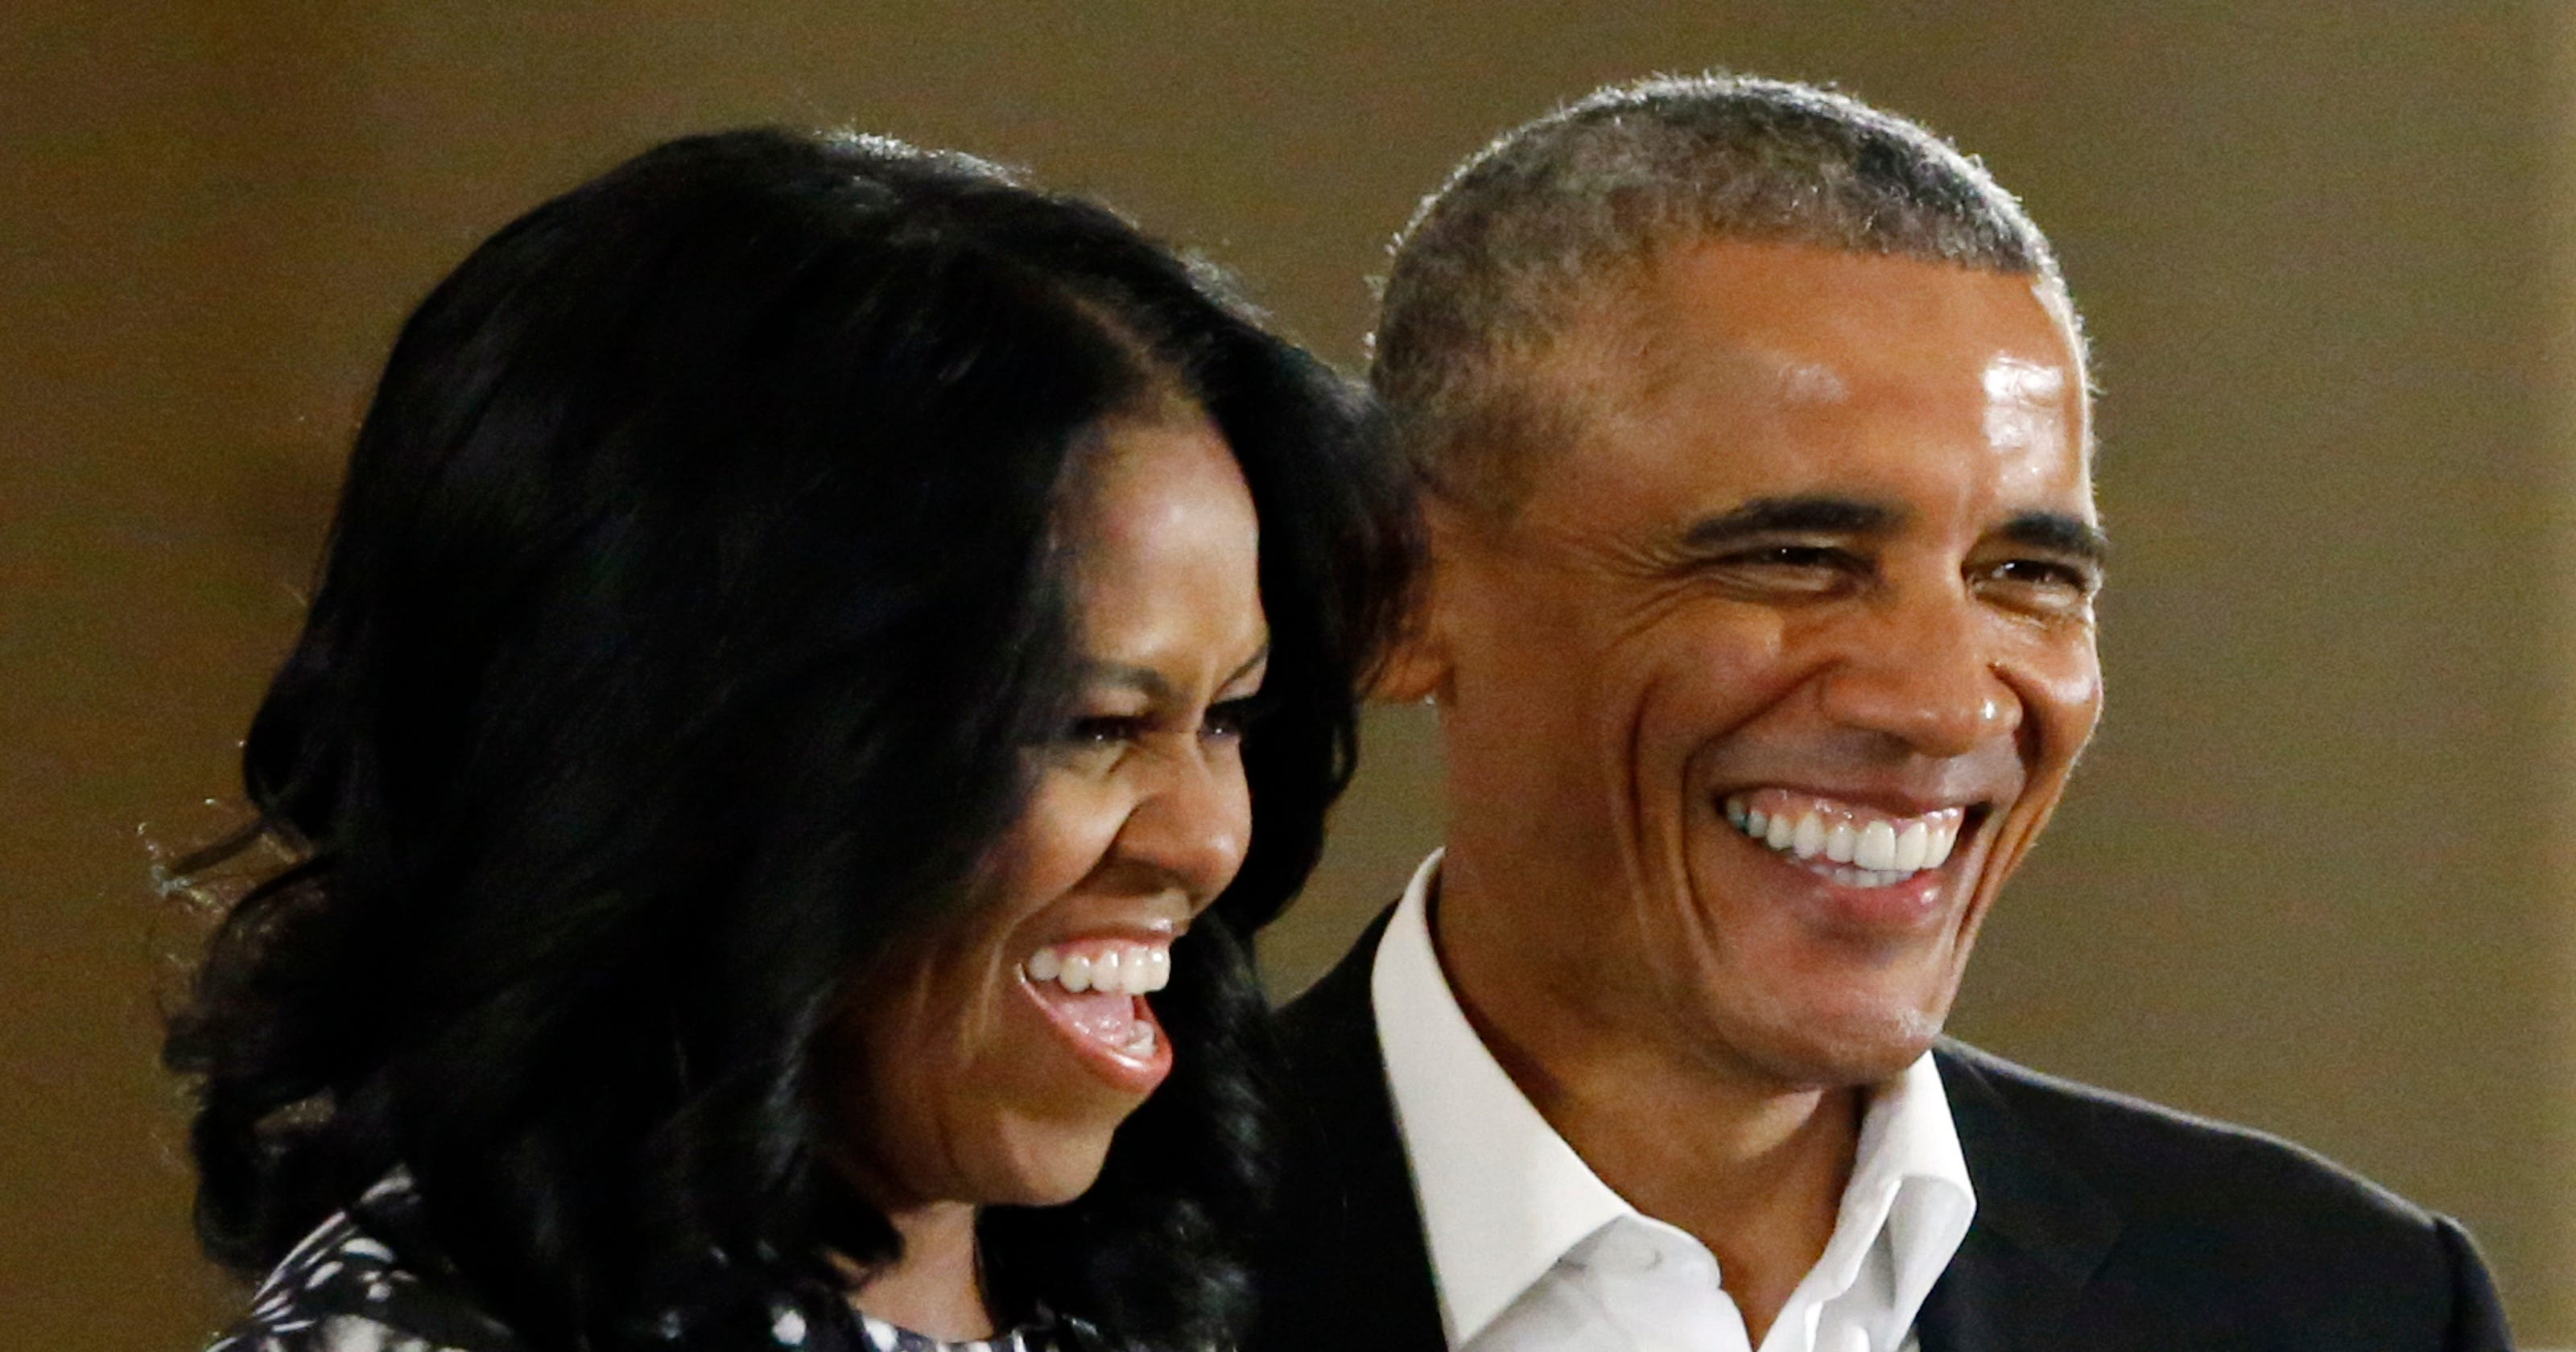 Barack and Michelle Obama sign Netflix deal to produce series and films